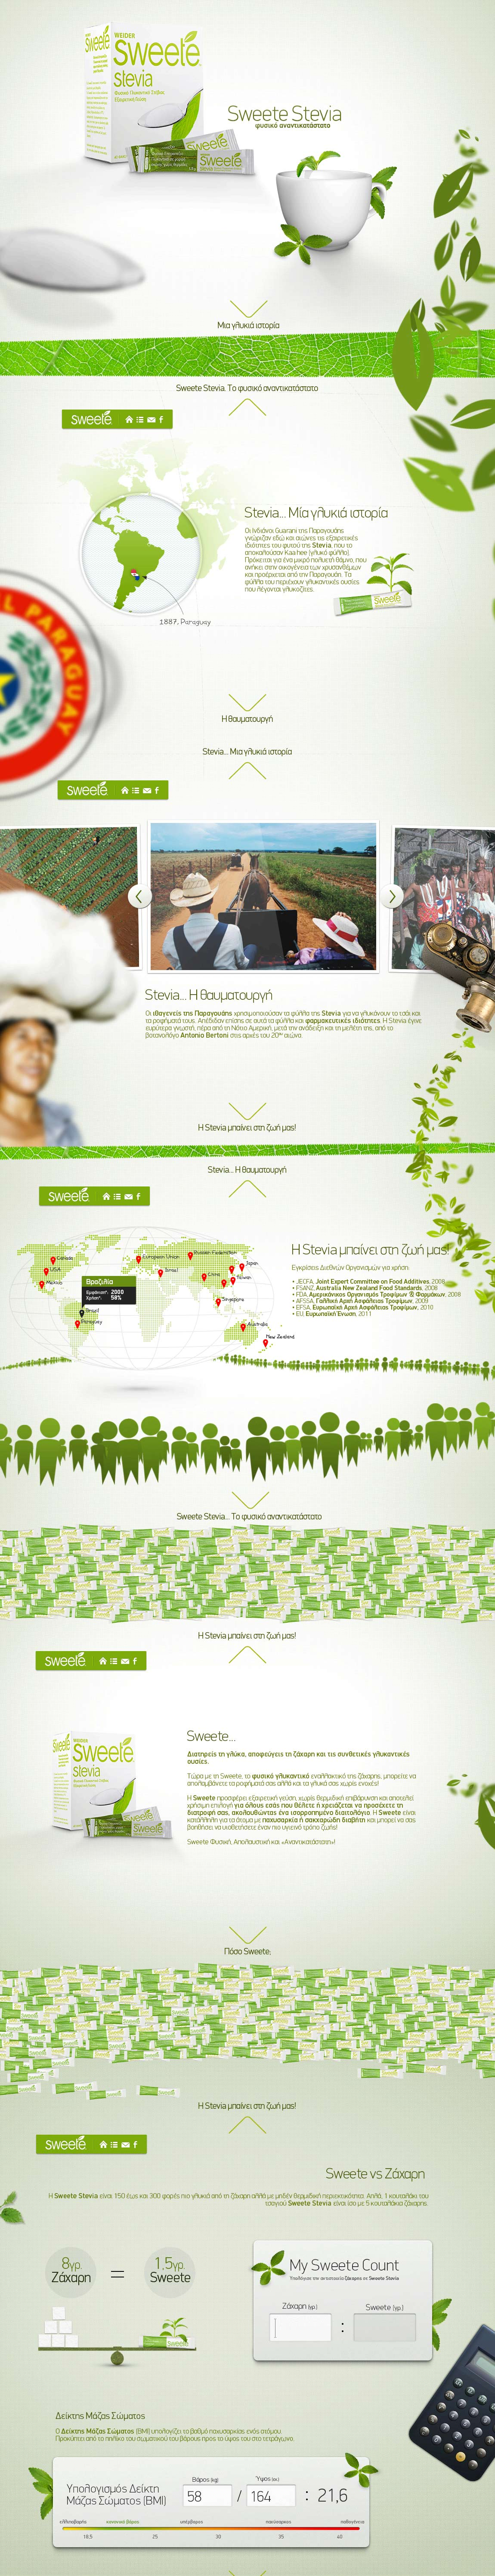 Sweete Stevia Website Screenshot